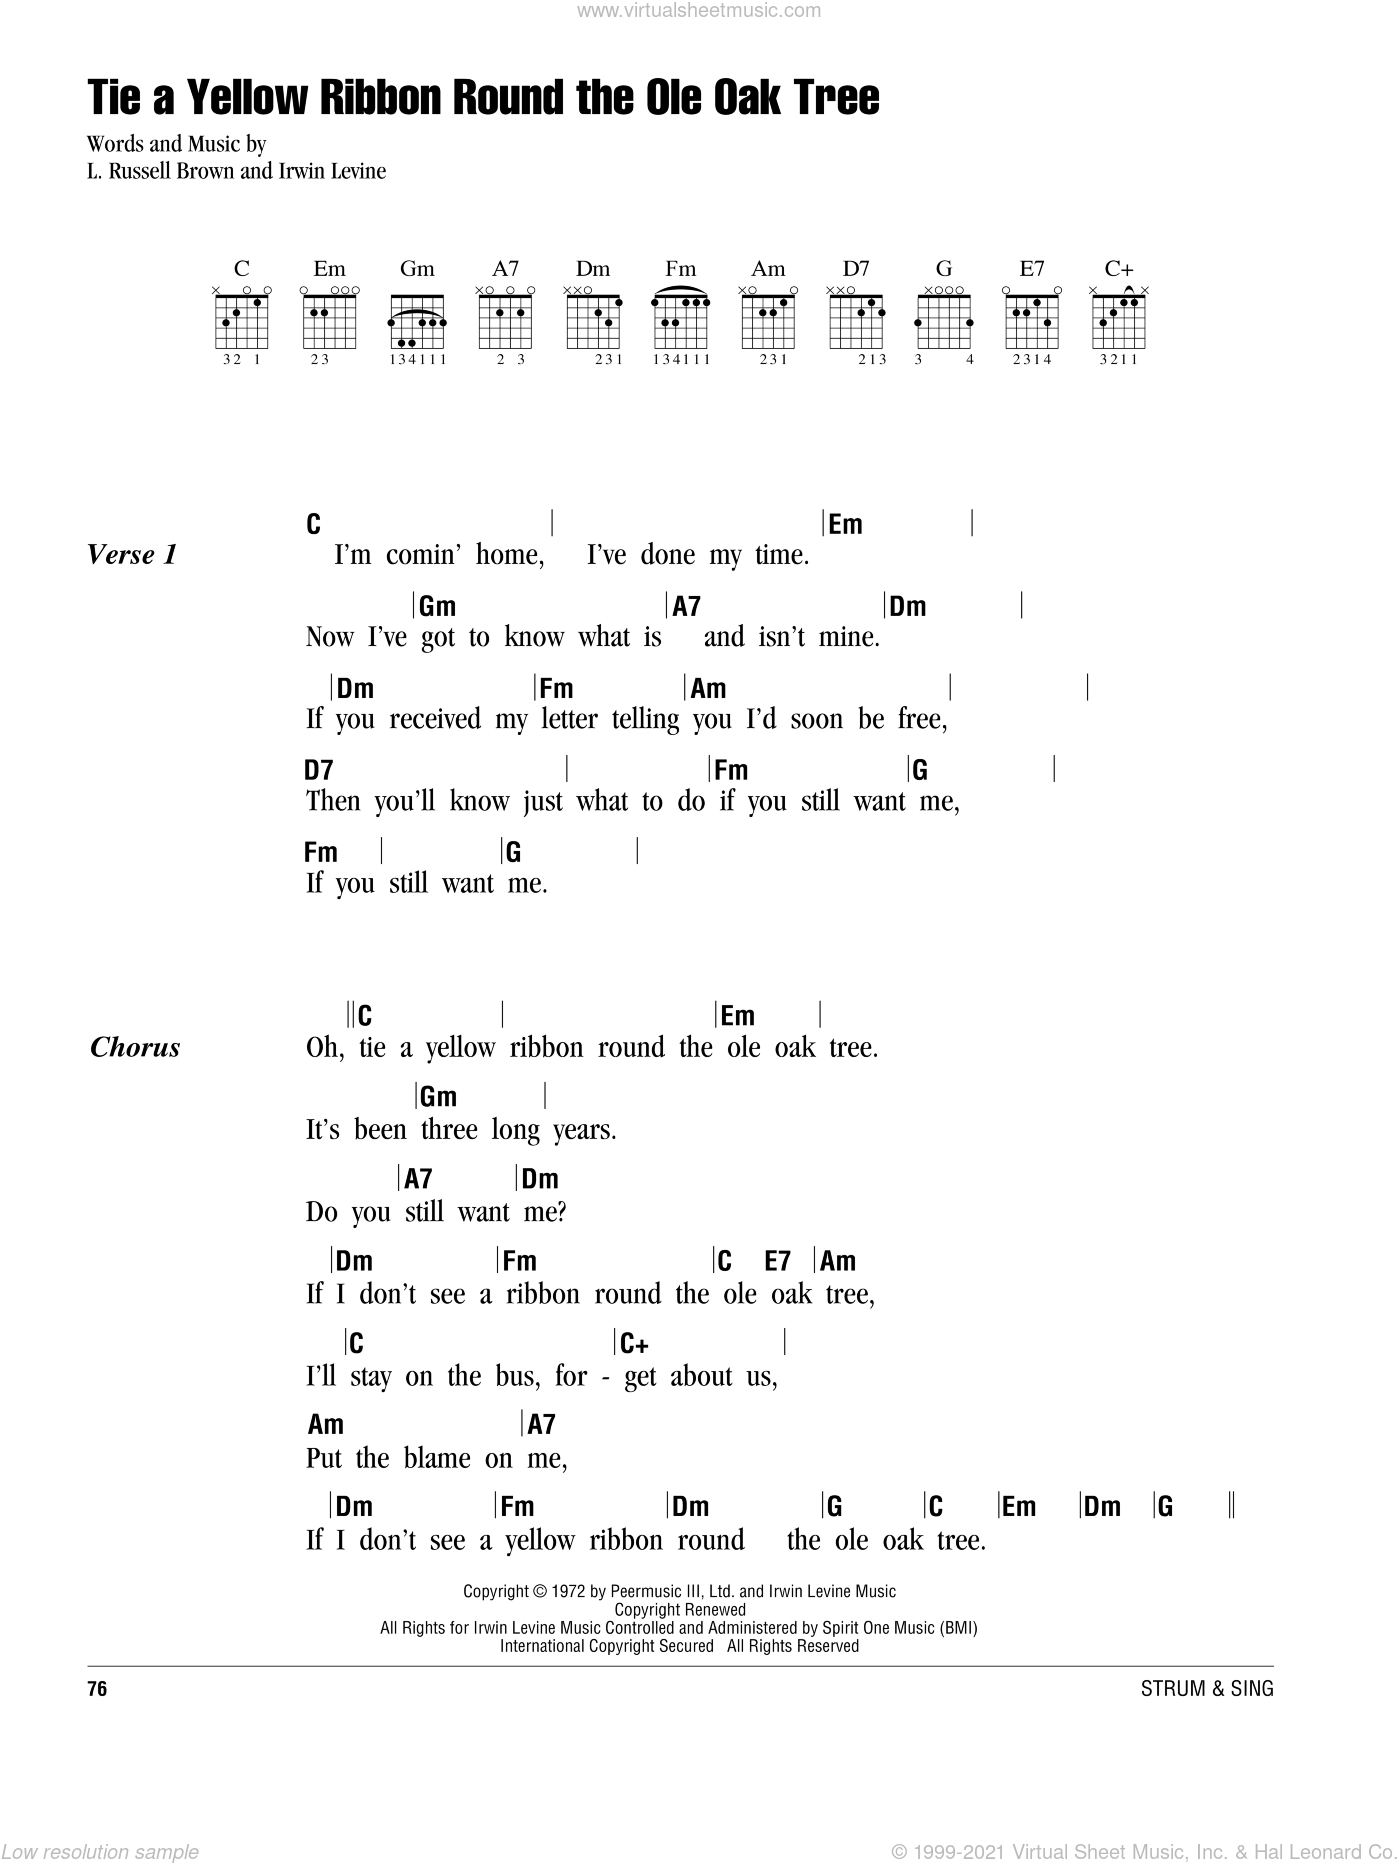 Tie A Yellow Ribbon Round The Ole Oak Tree sheet music for guitar (chords) by L. Russell Brown and Irwin Levine. Score Image Preview.